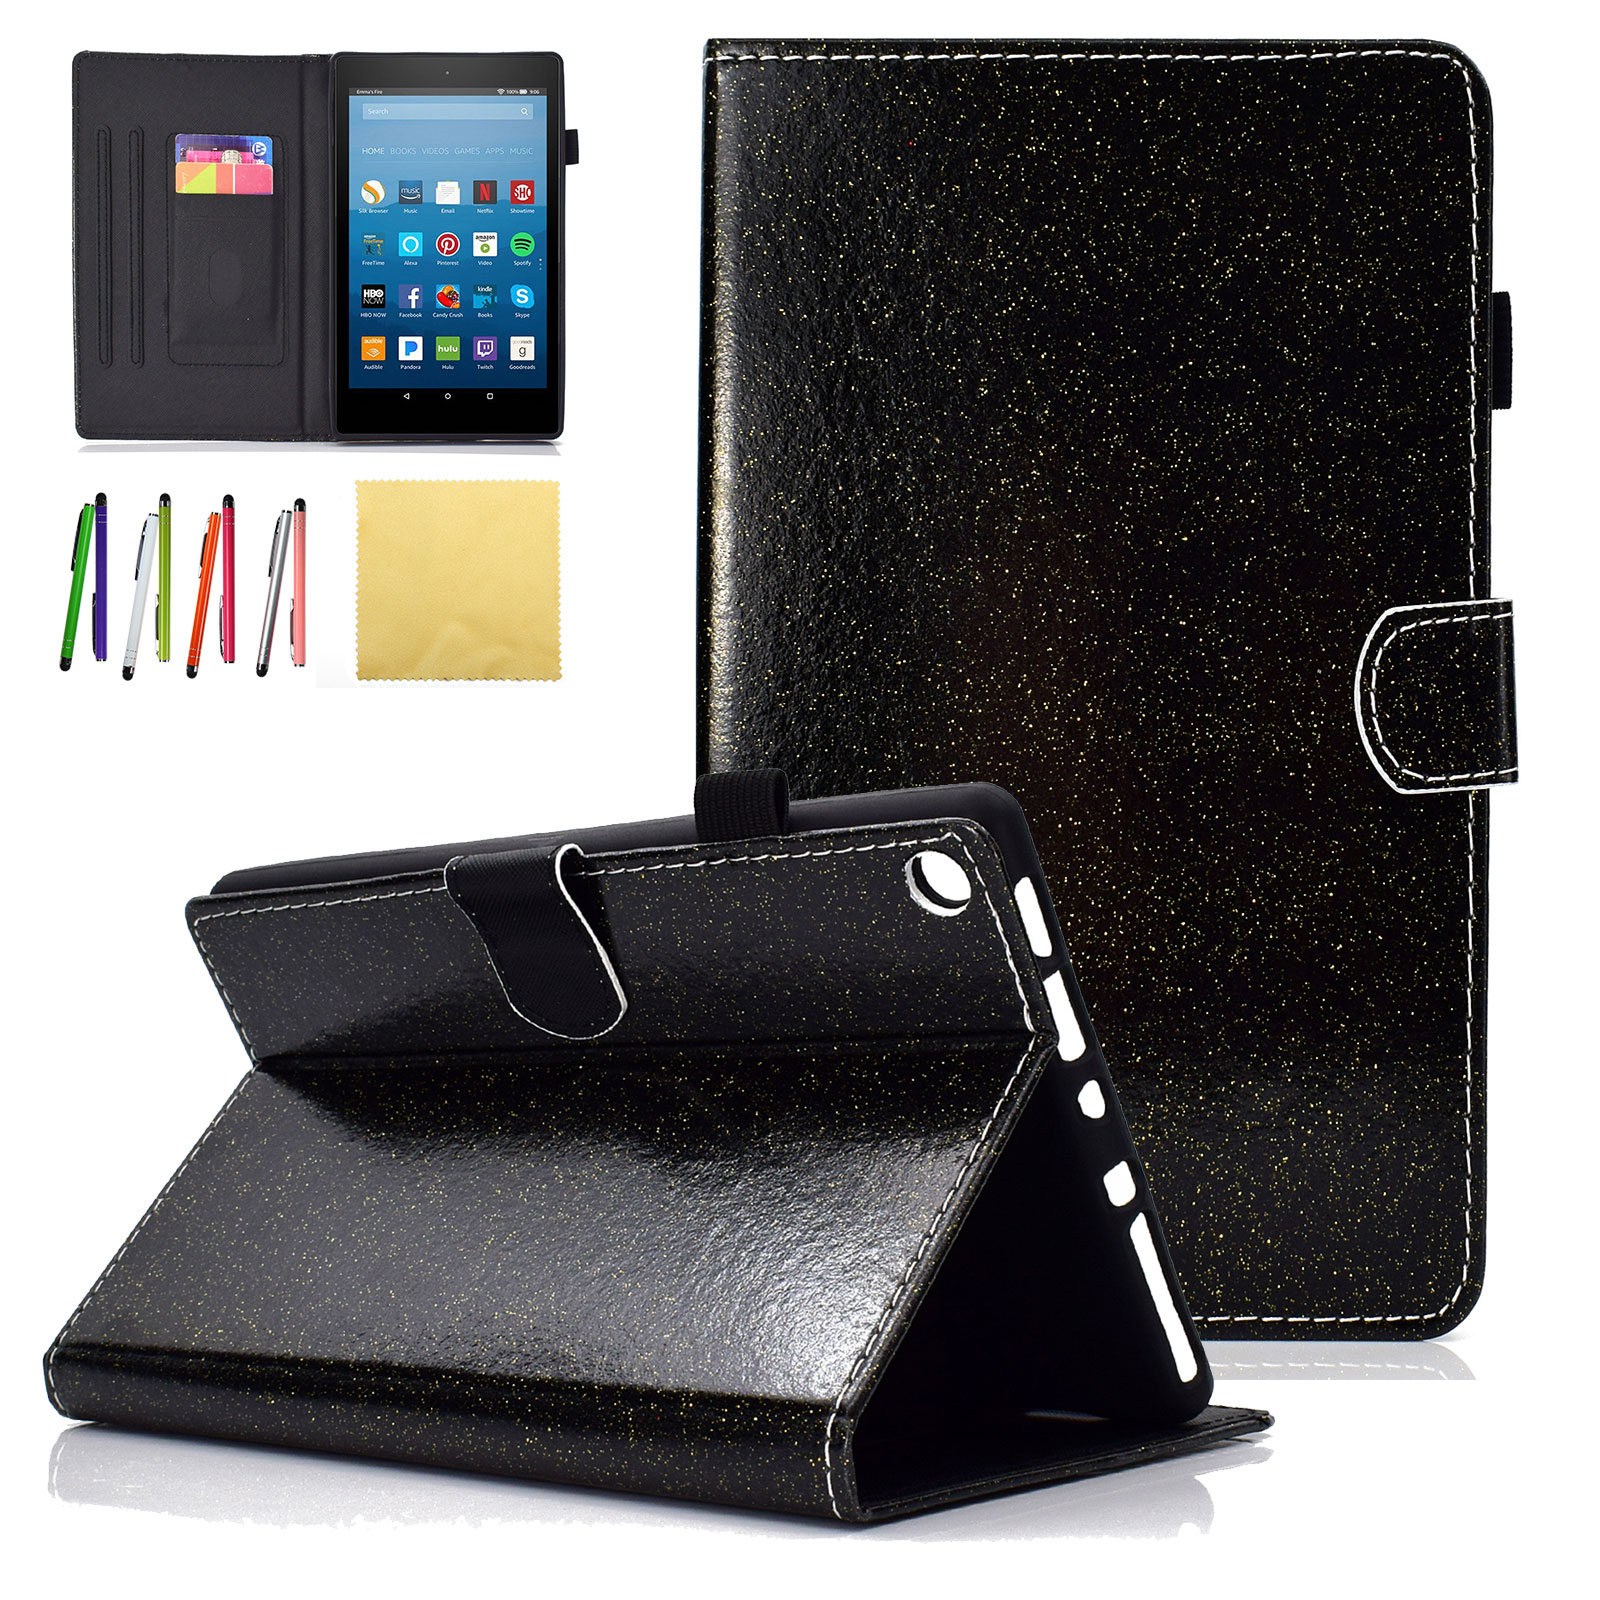 Fire HD 8 2018 2017 2016 & 2015 Kids Case, Goodest Slim Folio Glitter Stand Smart Case Covers w/Auto Sleep/Wake for All New Amazon Kindle Fire HD 8.0 inch (8th 7th 6th 5th Generation), Black